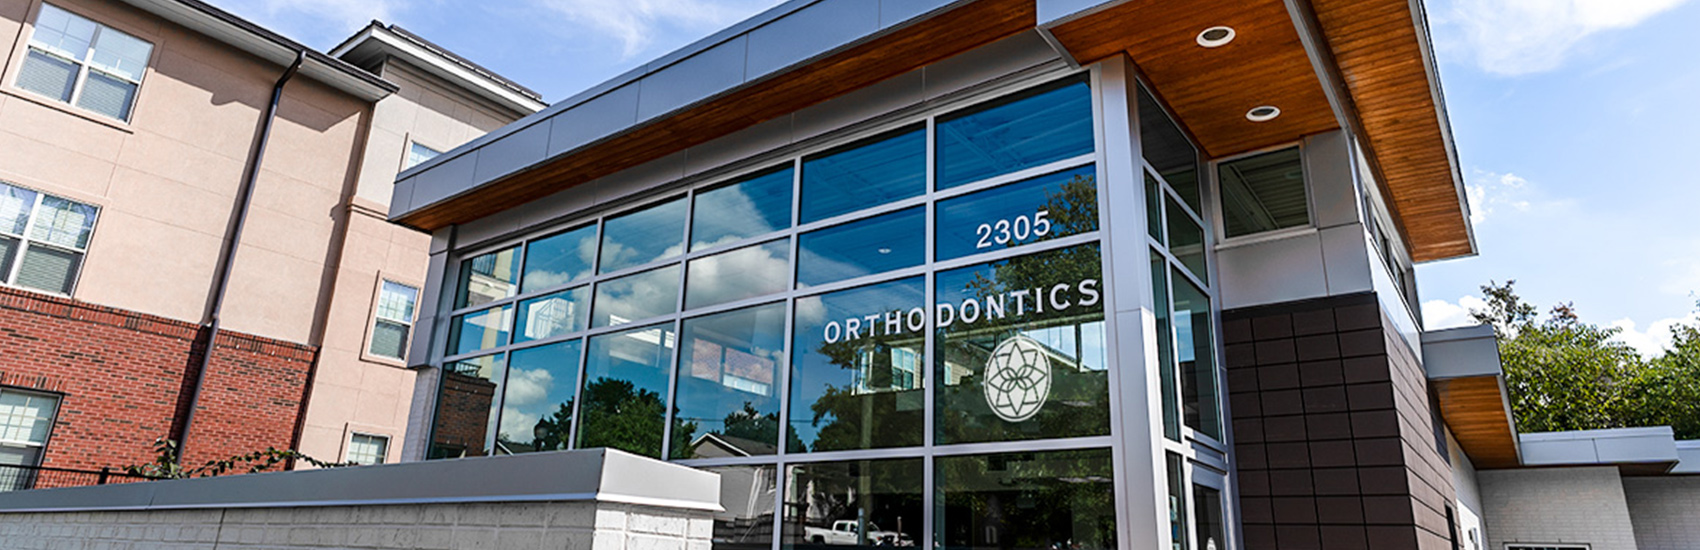 Walton & Maready Orthodontics, Raleigh office